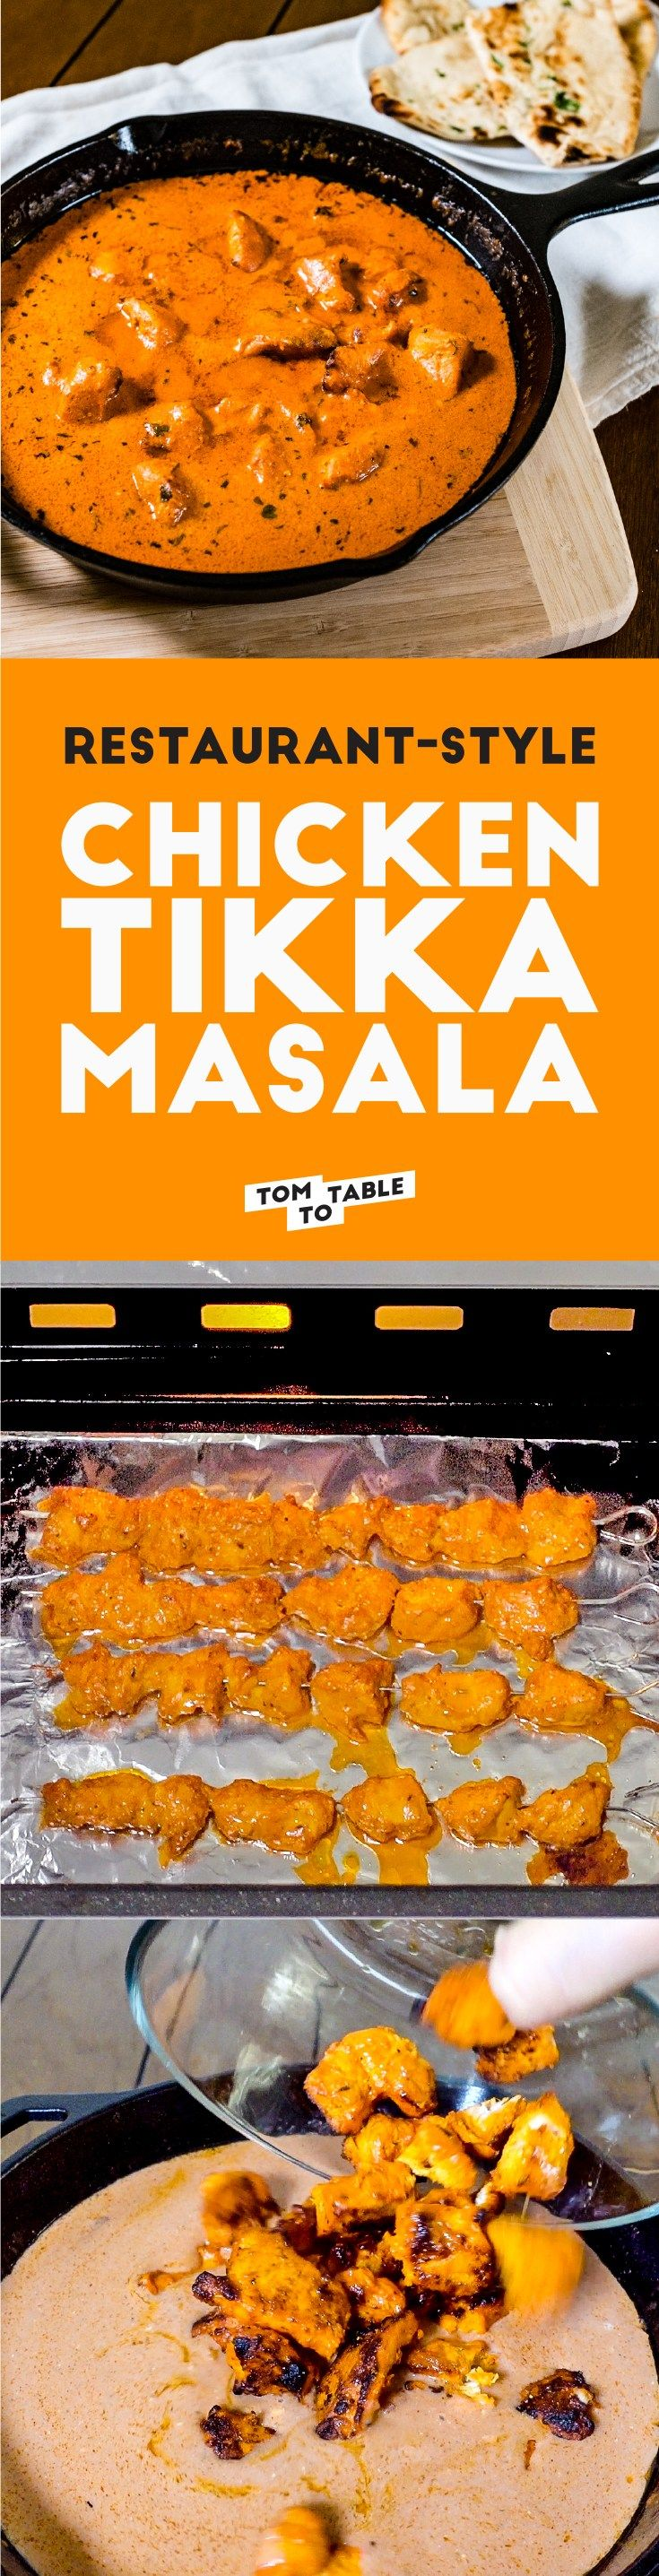 What's your favorite thing to order at an Indian restaurant? I bet it's Chicken Tikka Masala! It's seriously just as good as the one I had at my favorite Indian restaurant and I've been to many! It's a labor of love when making this dish and you'll need an Indian grocery store nearby for the ingredients. If you check those off your list, you're in for a treat. | tomtotable.com #recipe